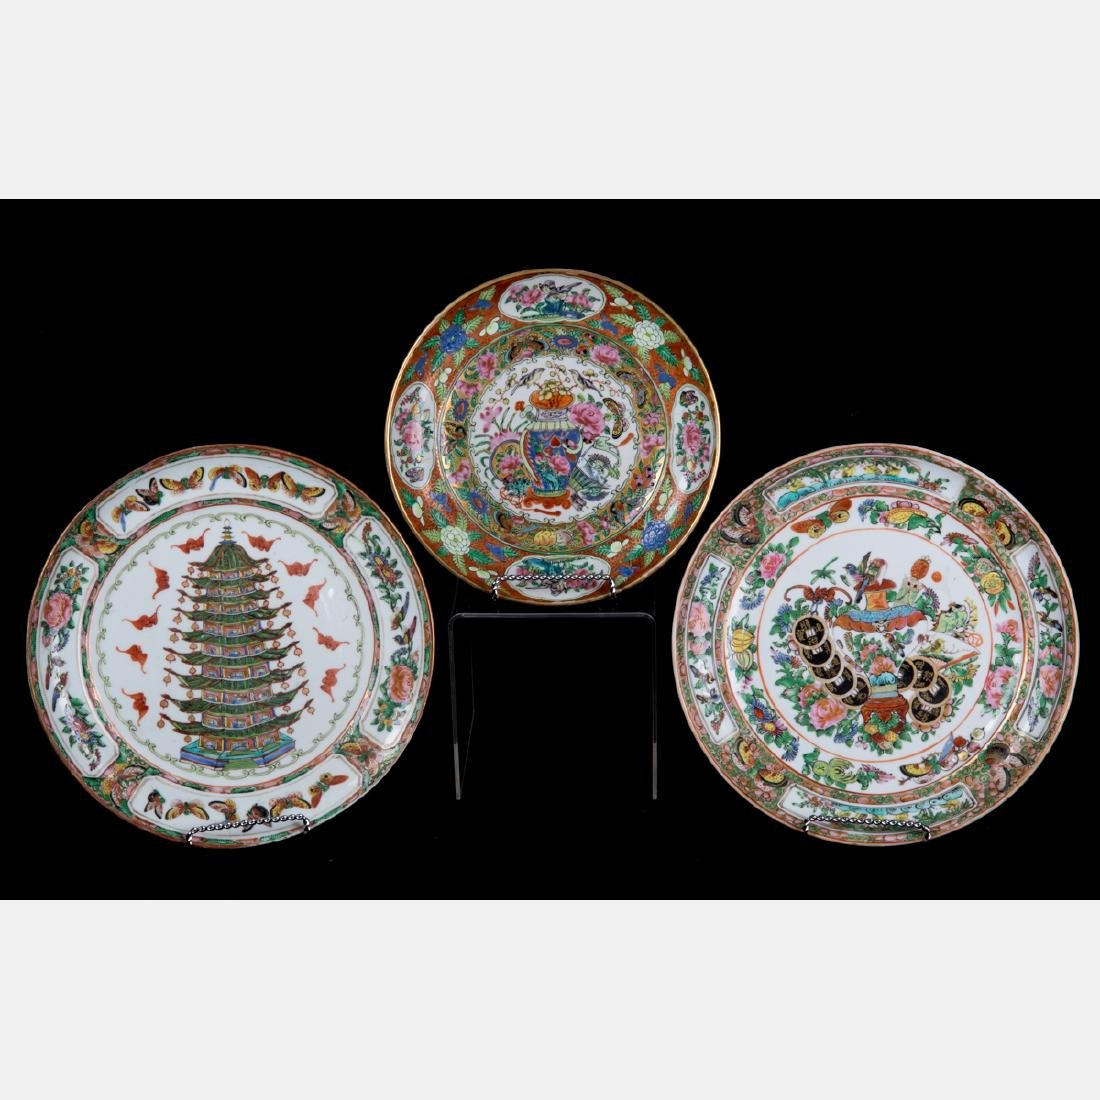 A Group of Three Chinese Rose Medallion Porcelain